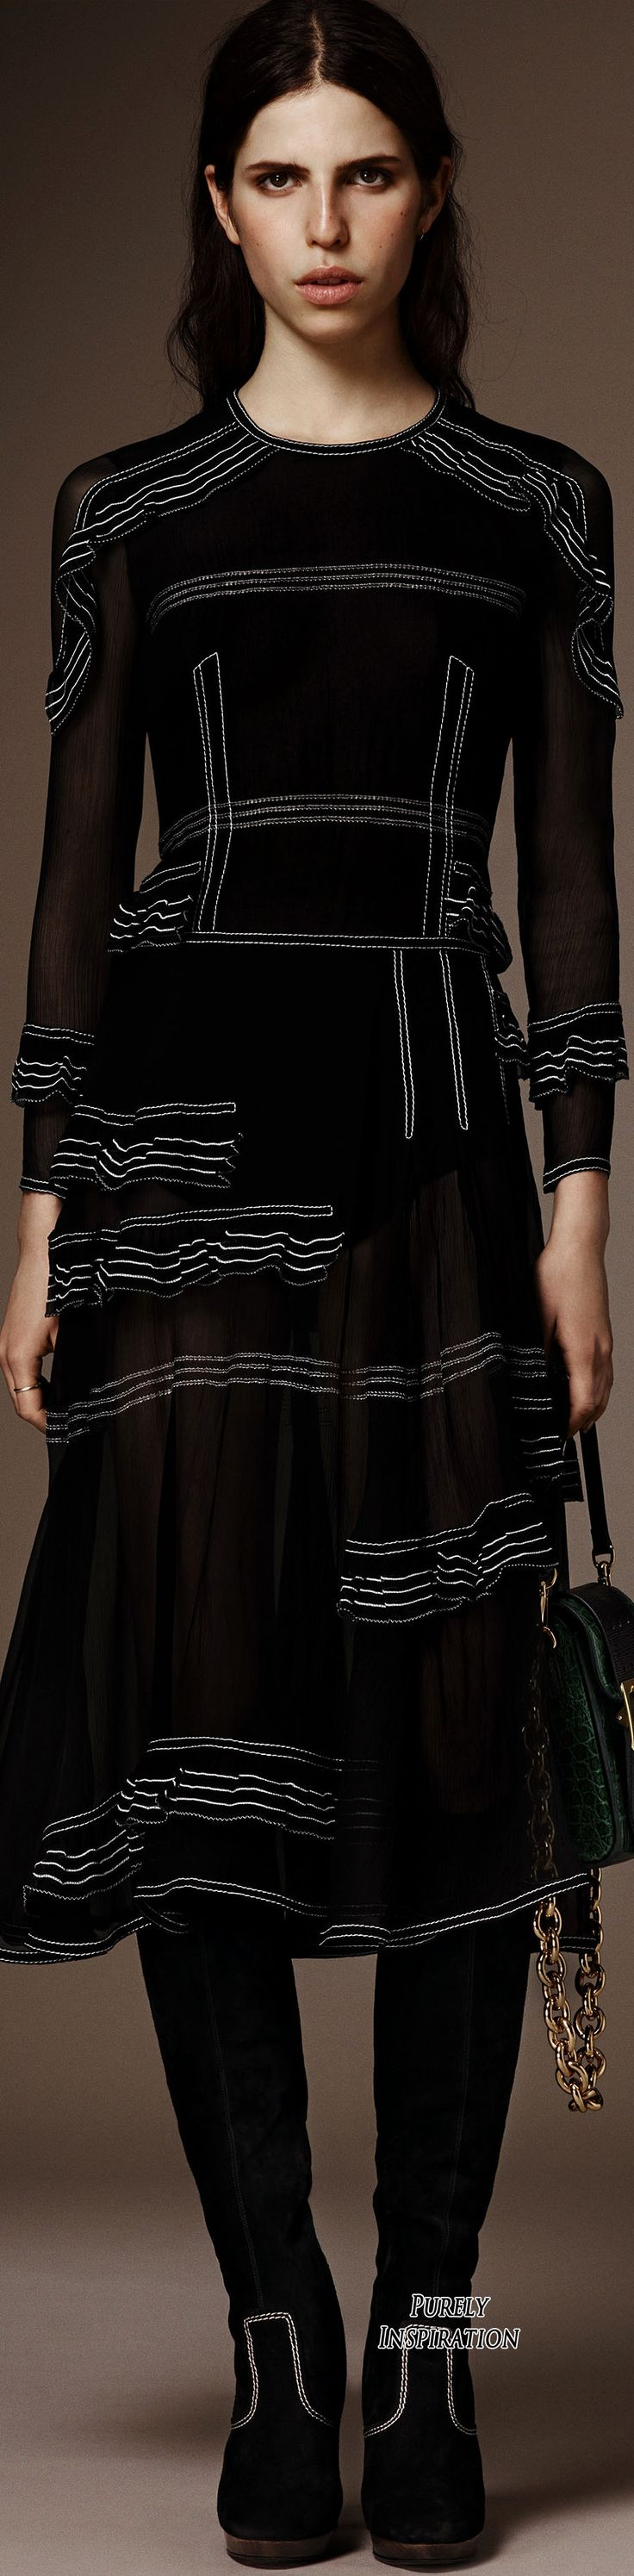 Burberry Pre-Fall 2016 Women's Fashion RTW | Purely Inspiration